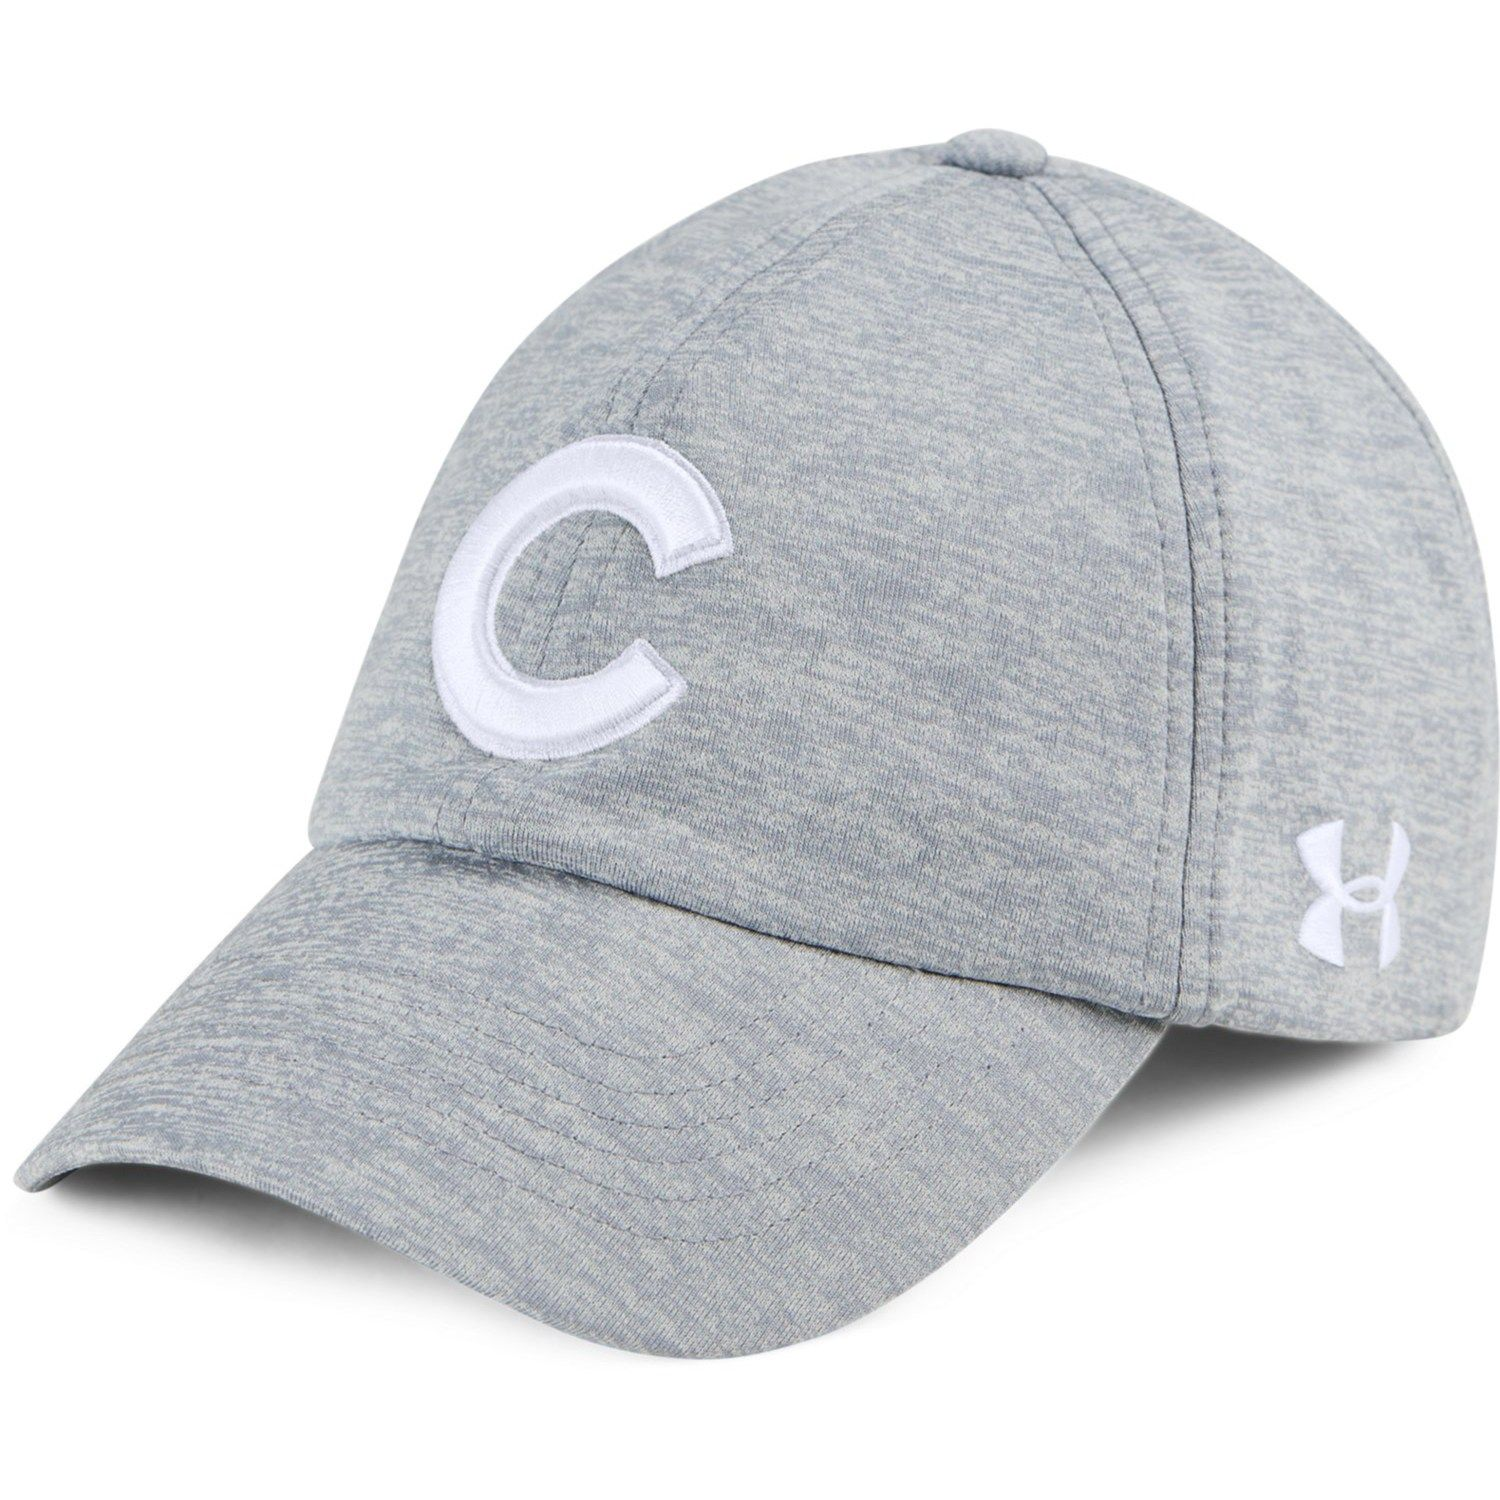 6335bba4 Women's Under Armour Chicago Cubs Renegade Adjustable Cap in 2018 ...